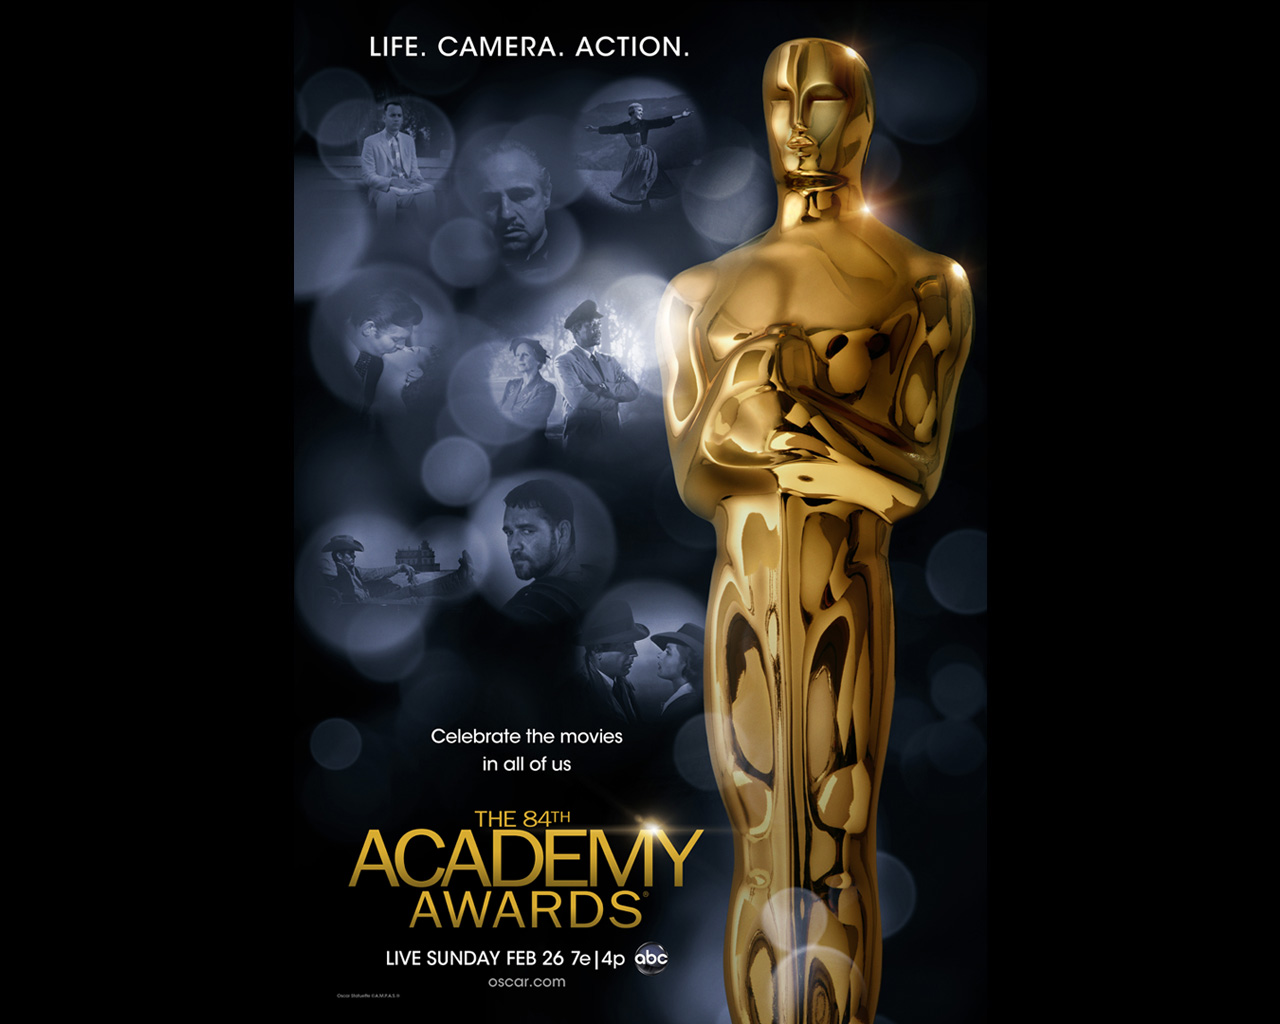 The-84th-Academy-Awards-Poster